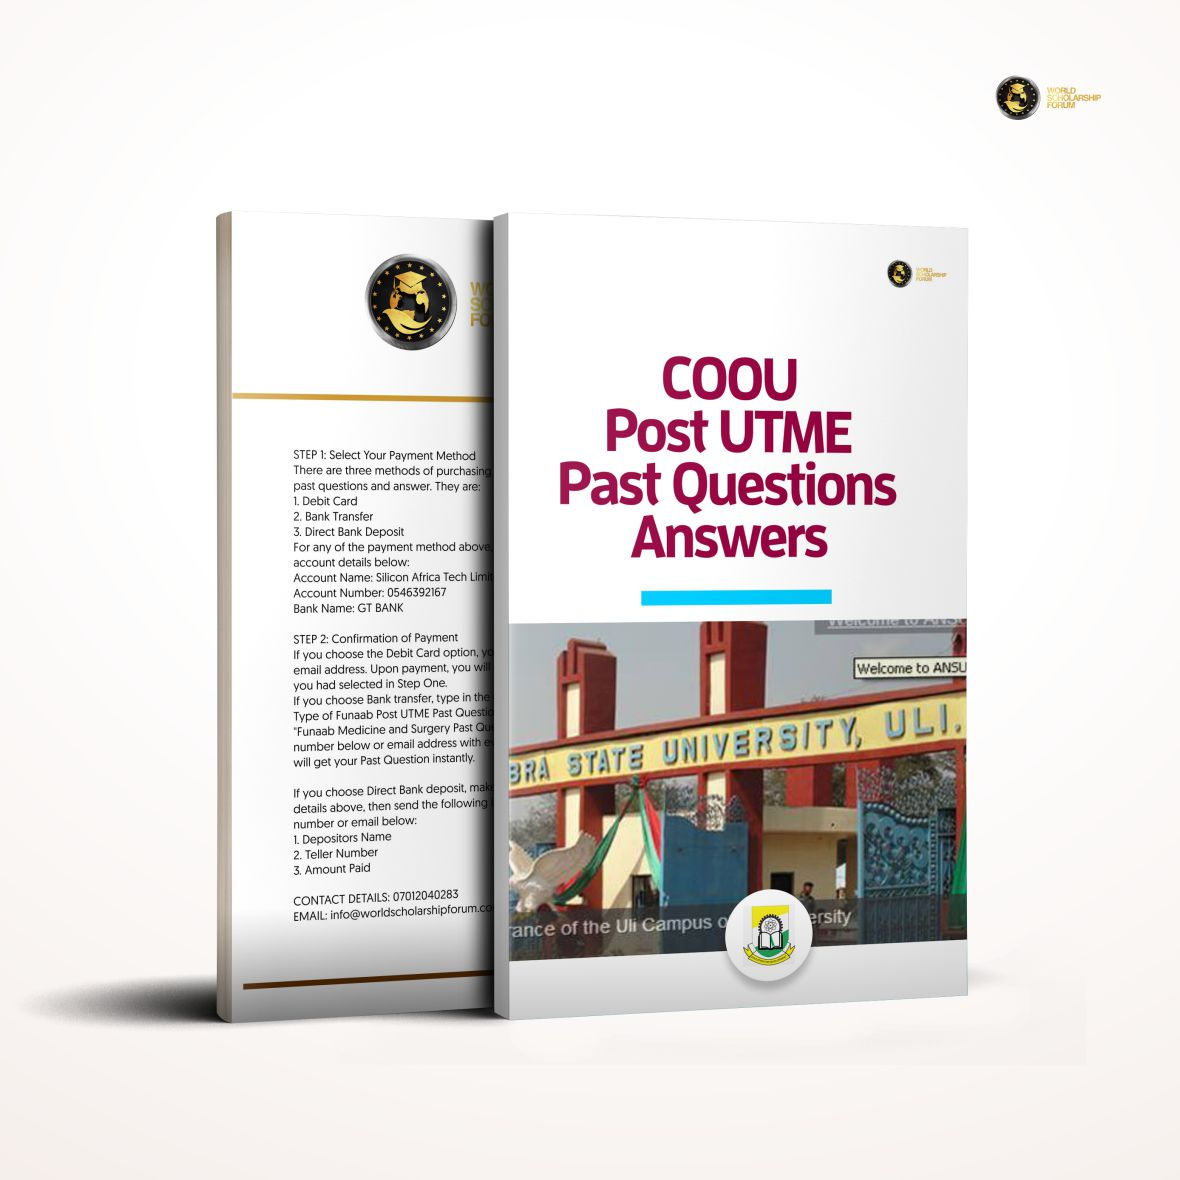 coou-post-utme-past-question-answers